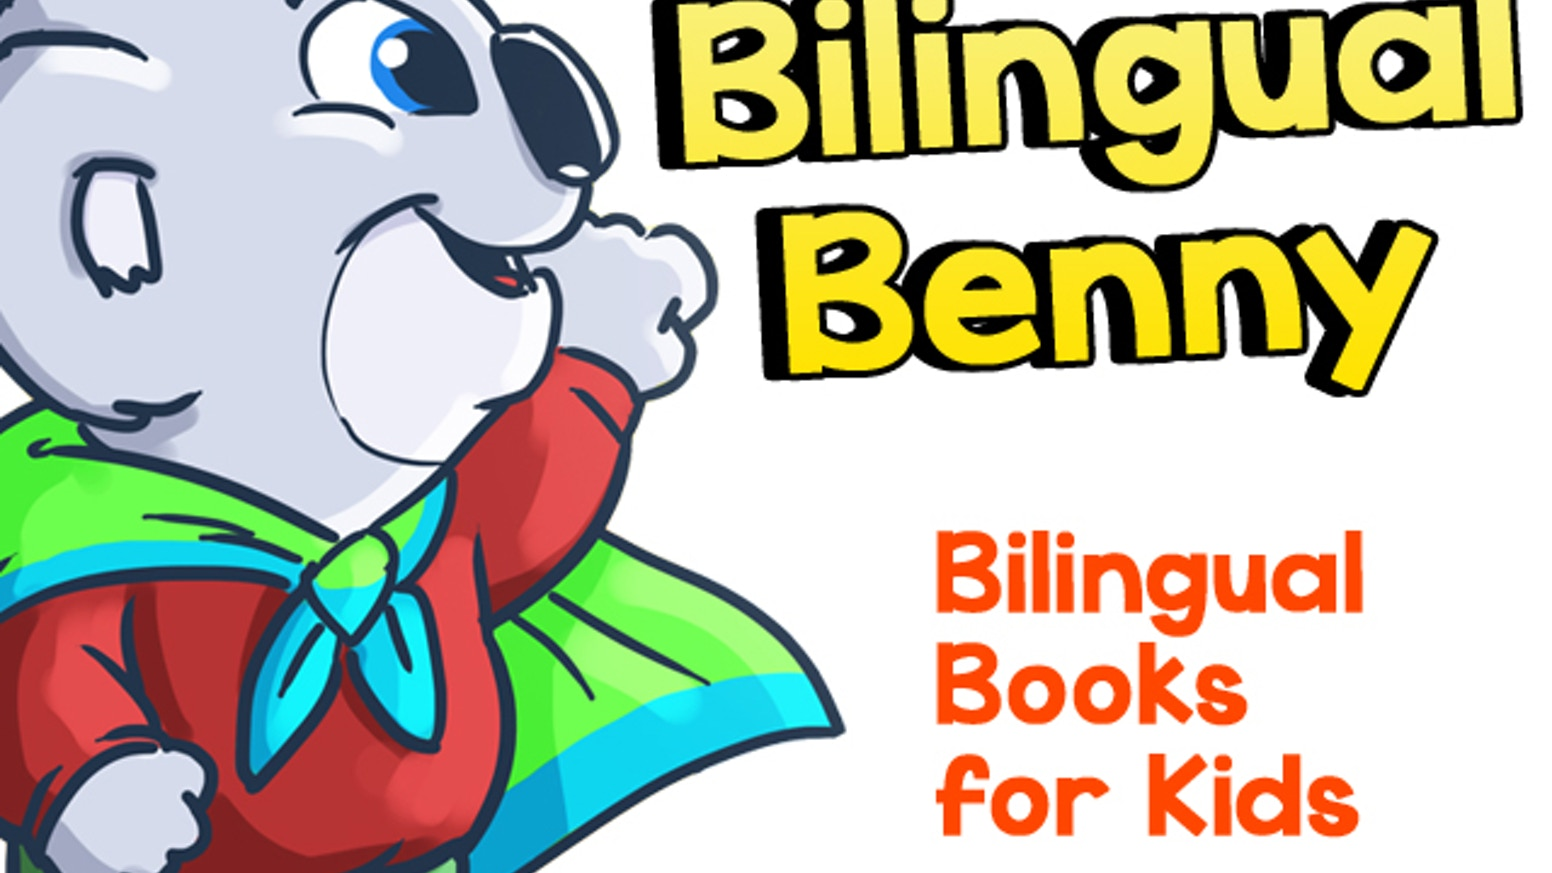 bilingual benny better bilingual books for kids by michael hodge